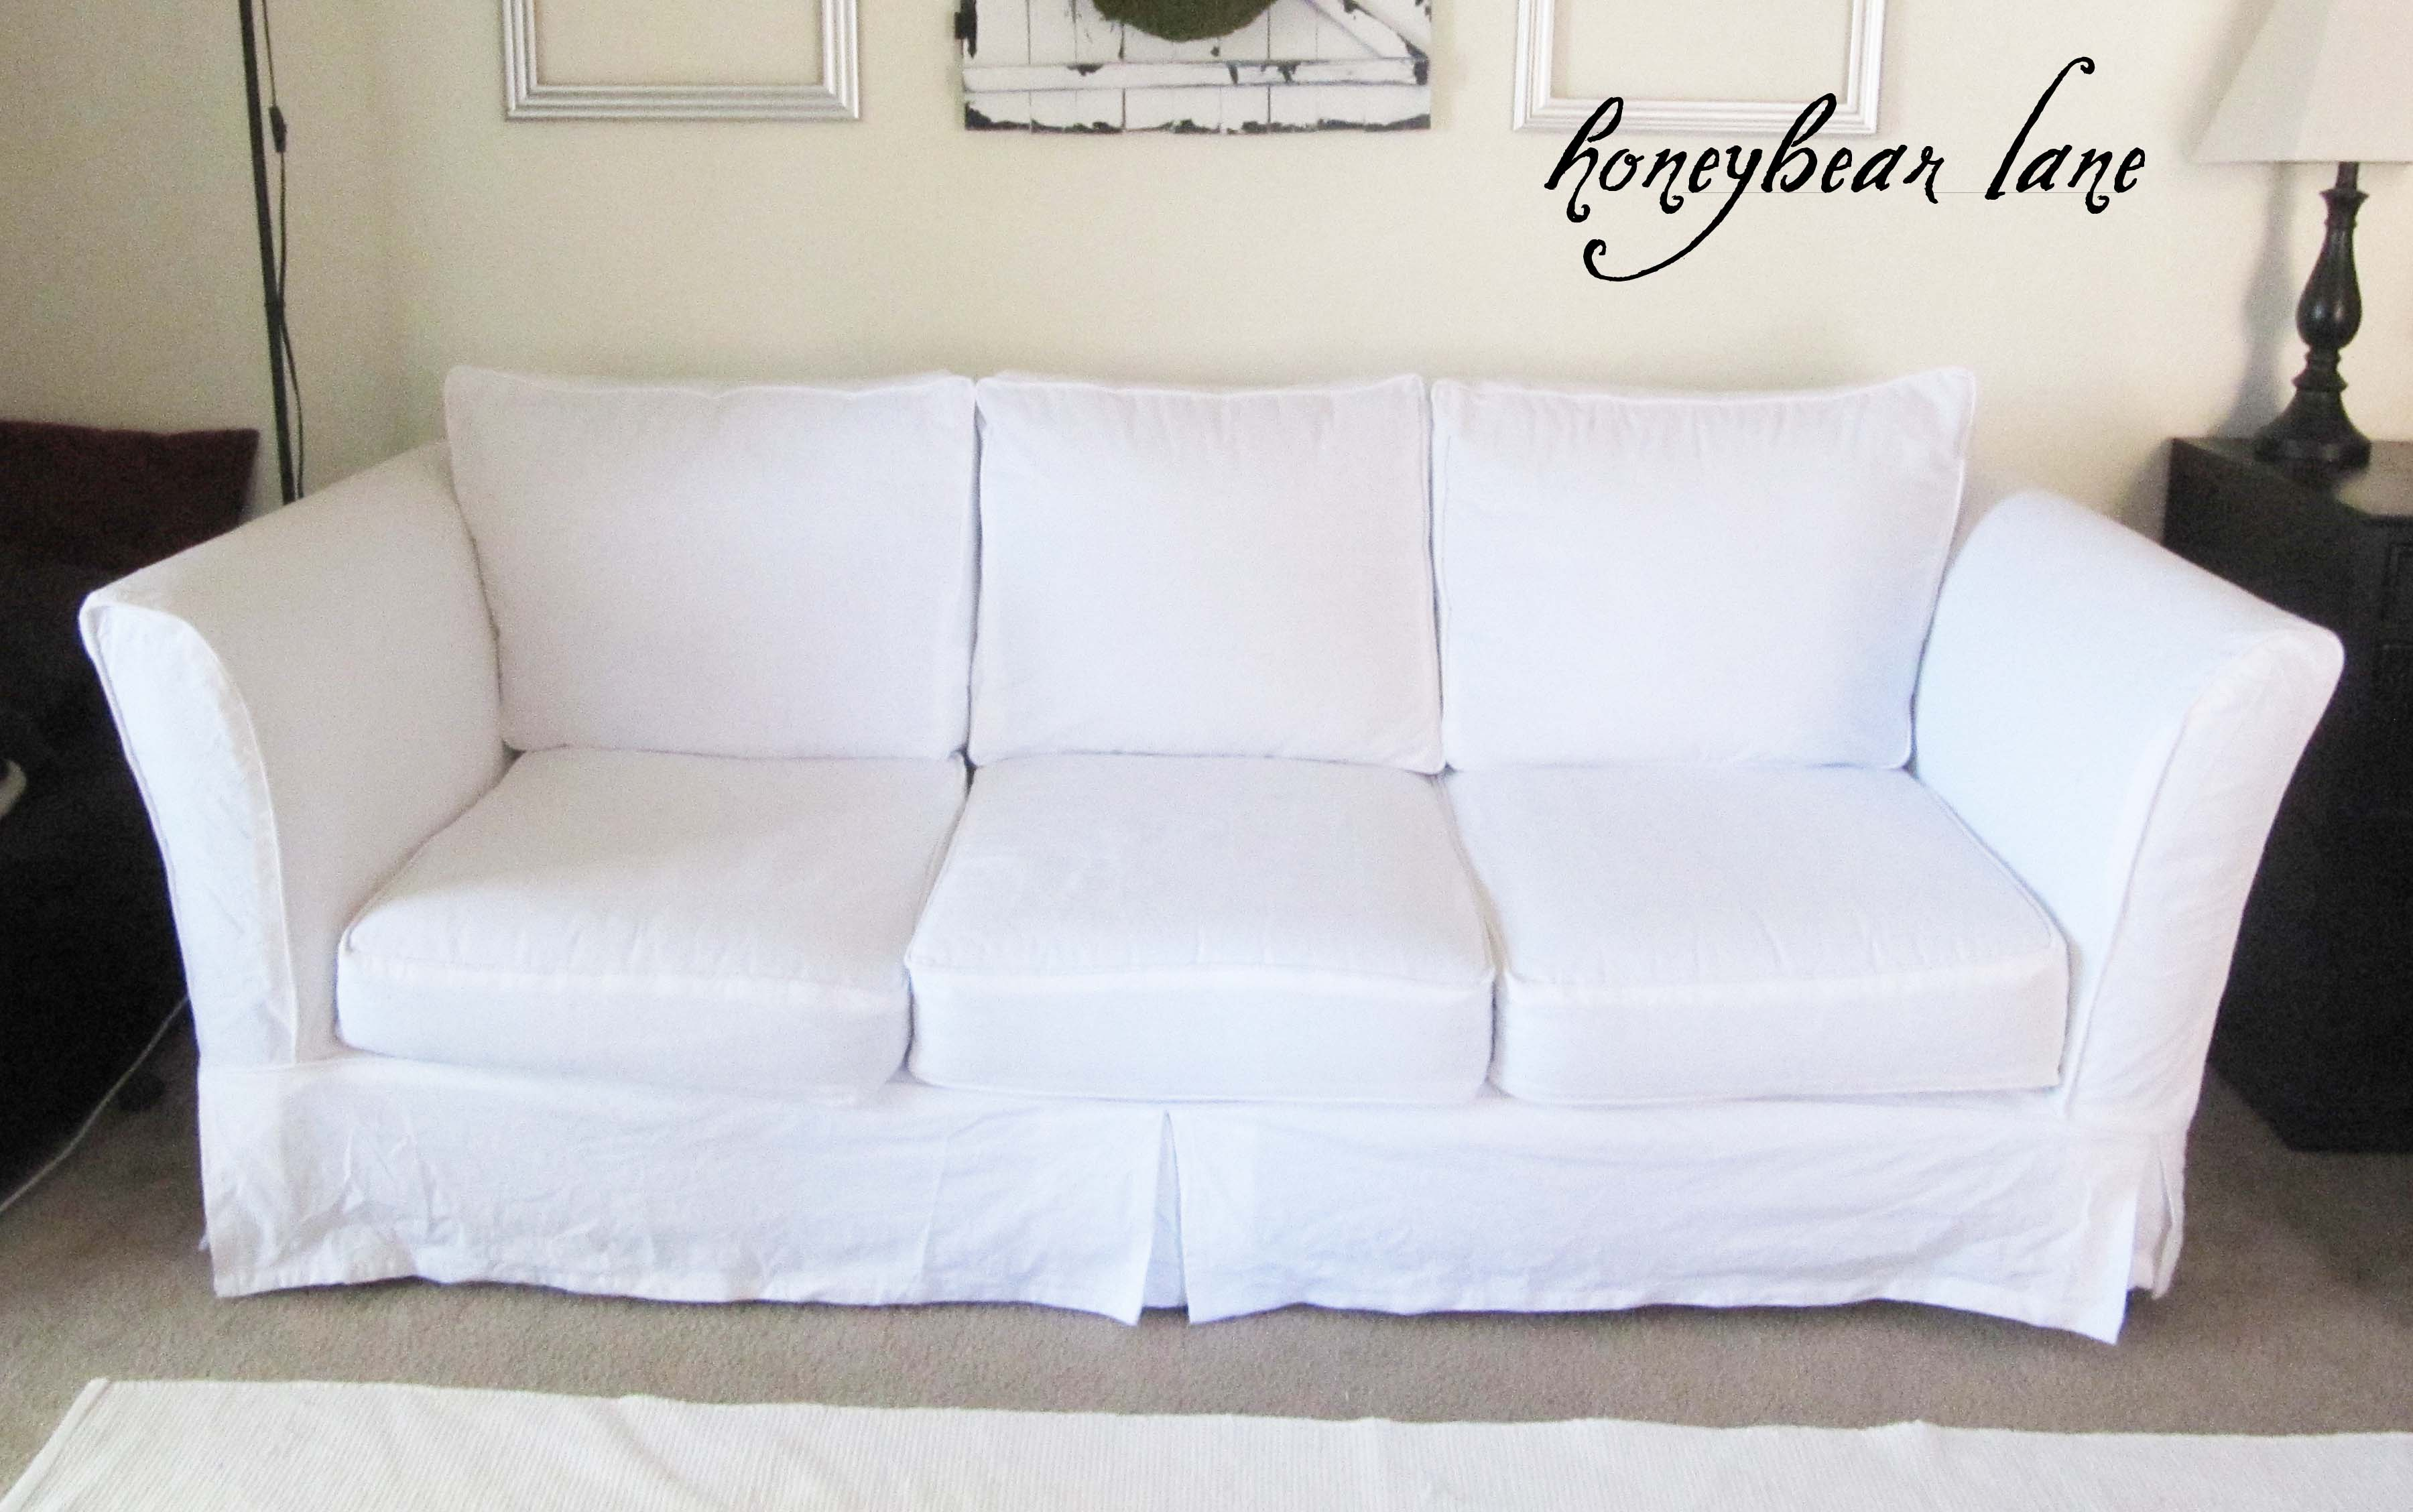 off white slipcover sofa loaf bagsie review cover how to a chair or with loose